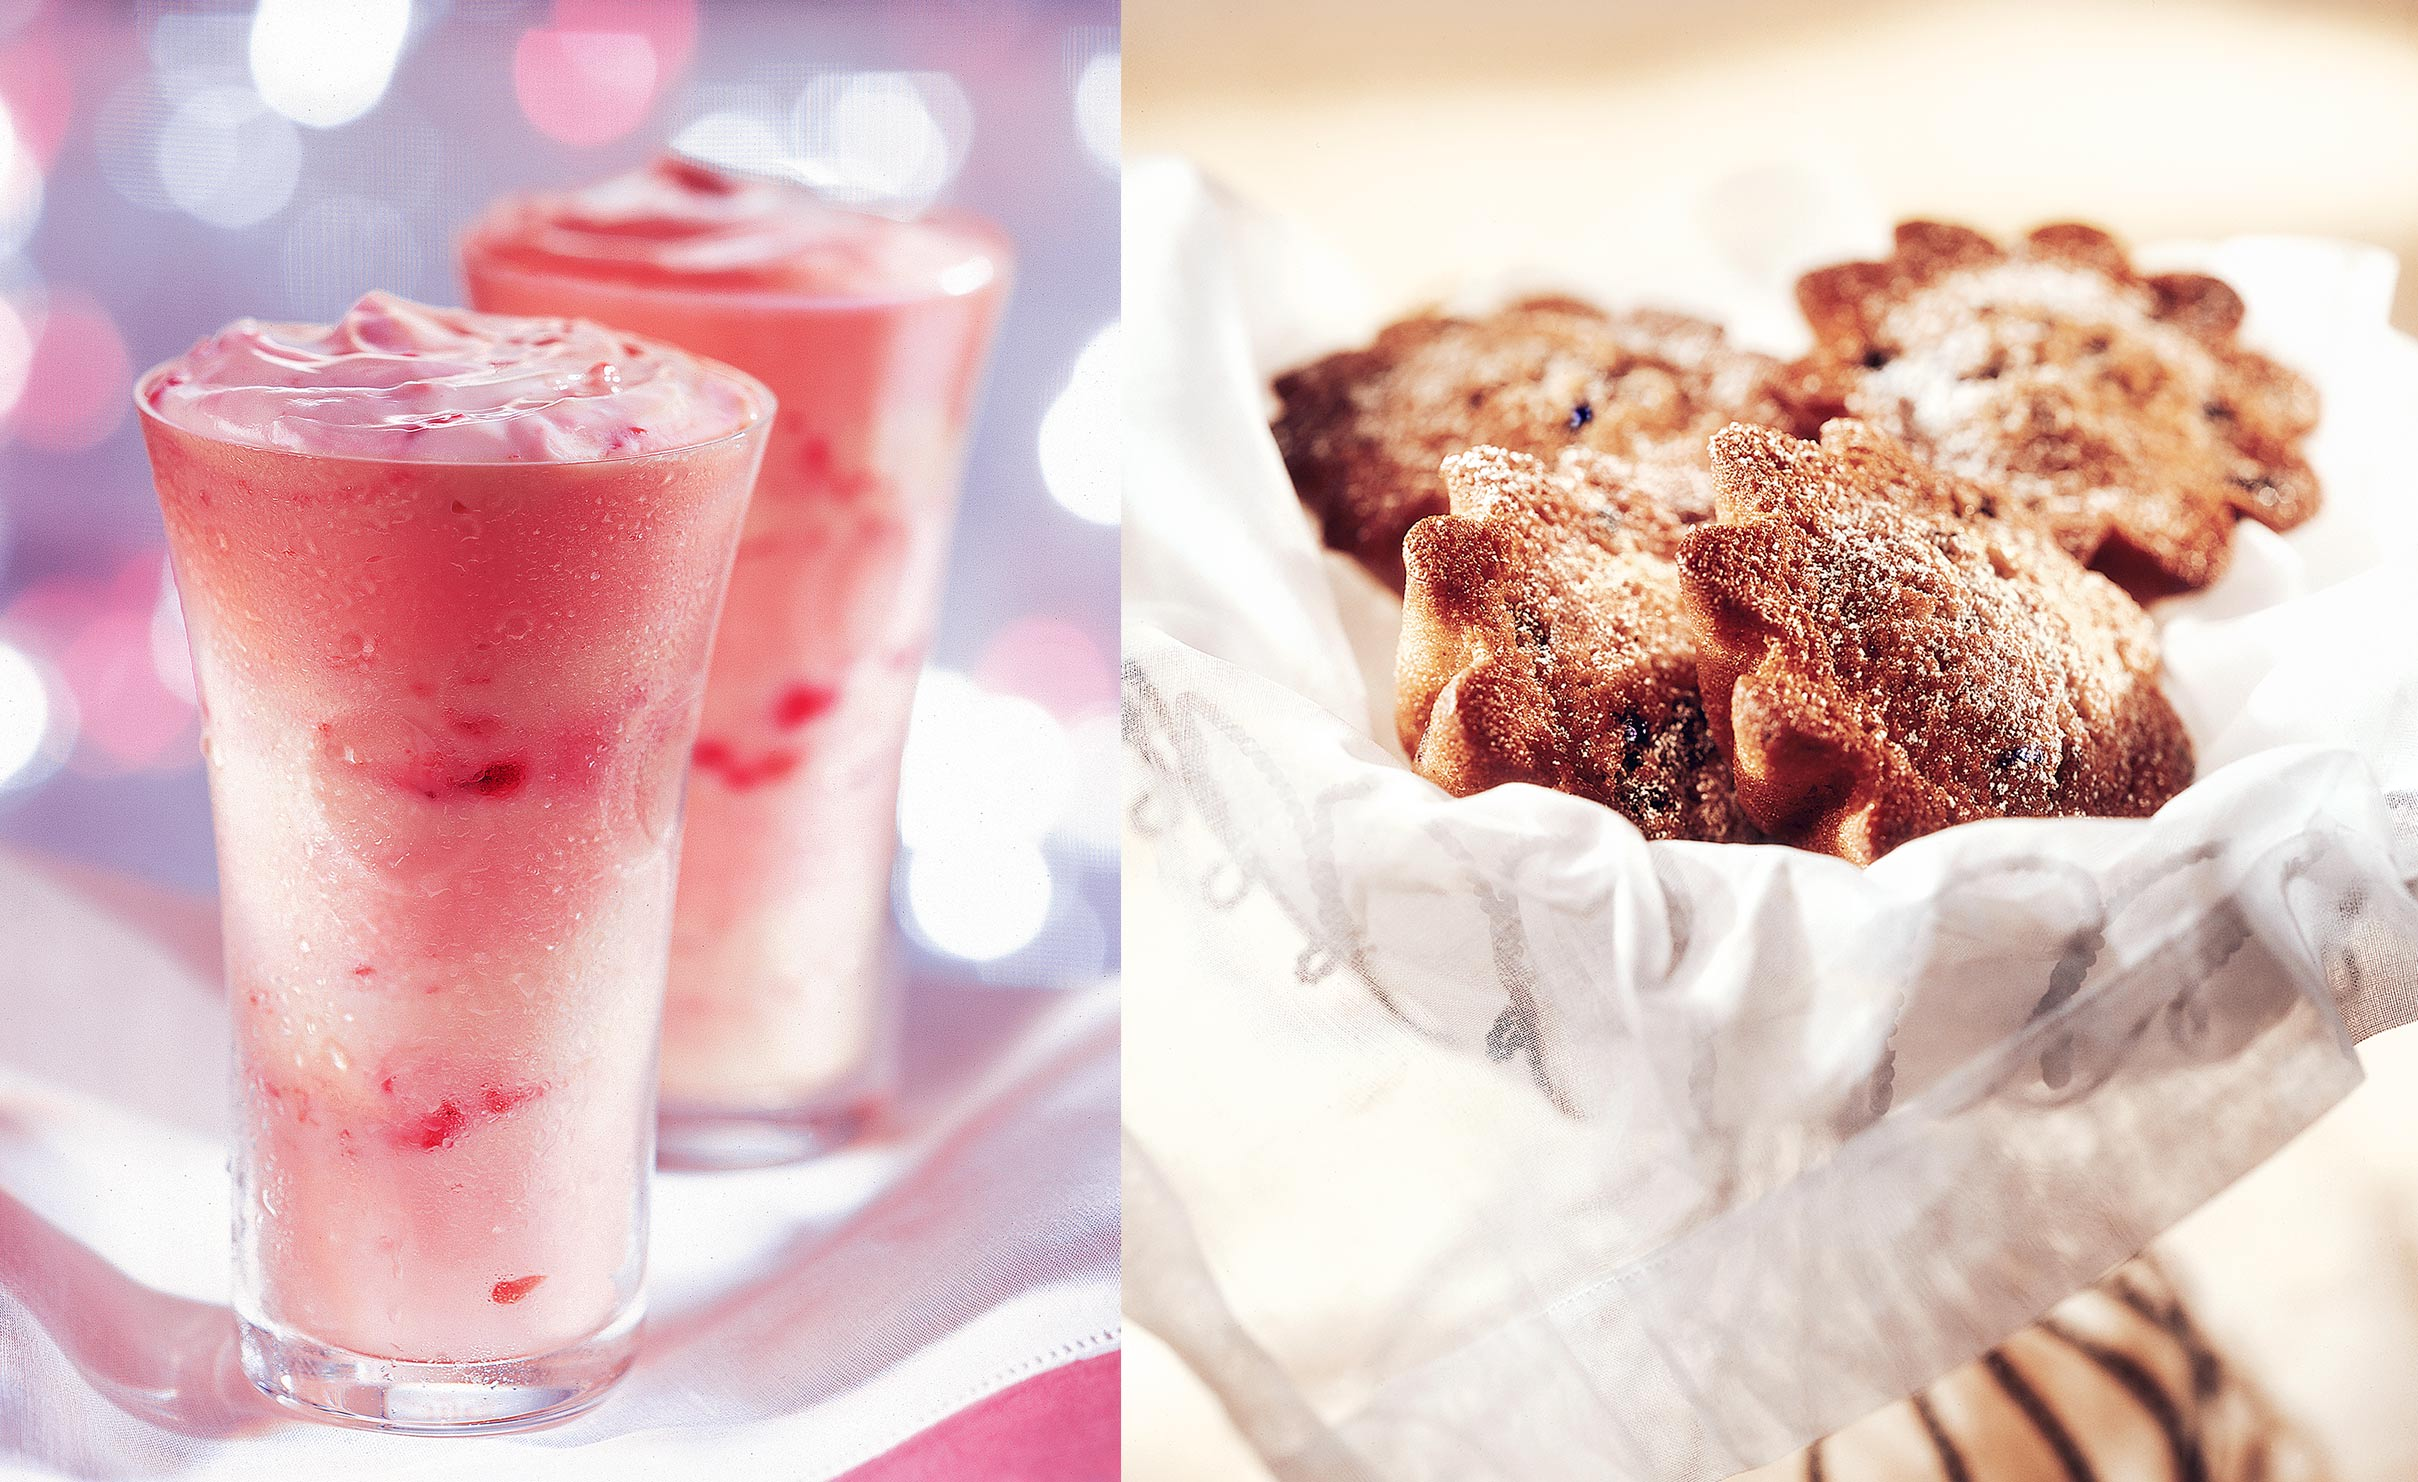 Strawberry smoothie and blueberry muffins